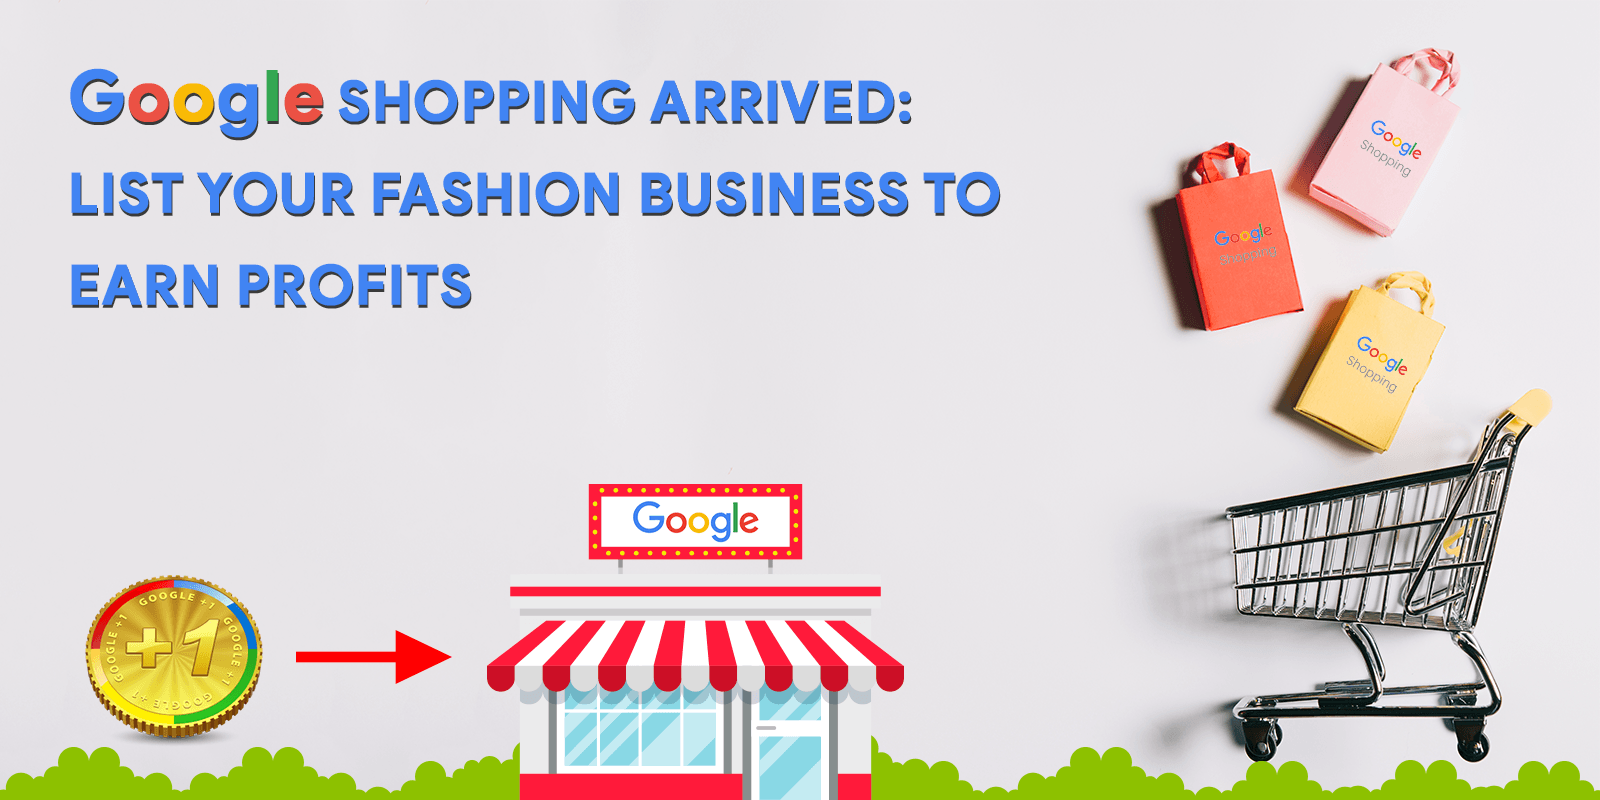 Google Shopping Arrived